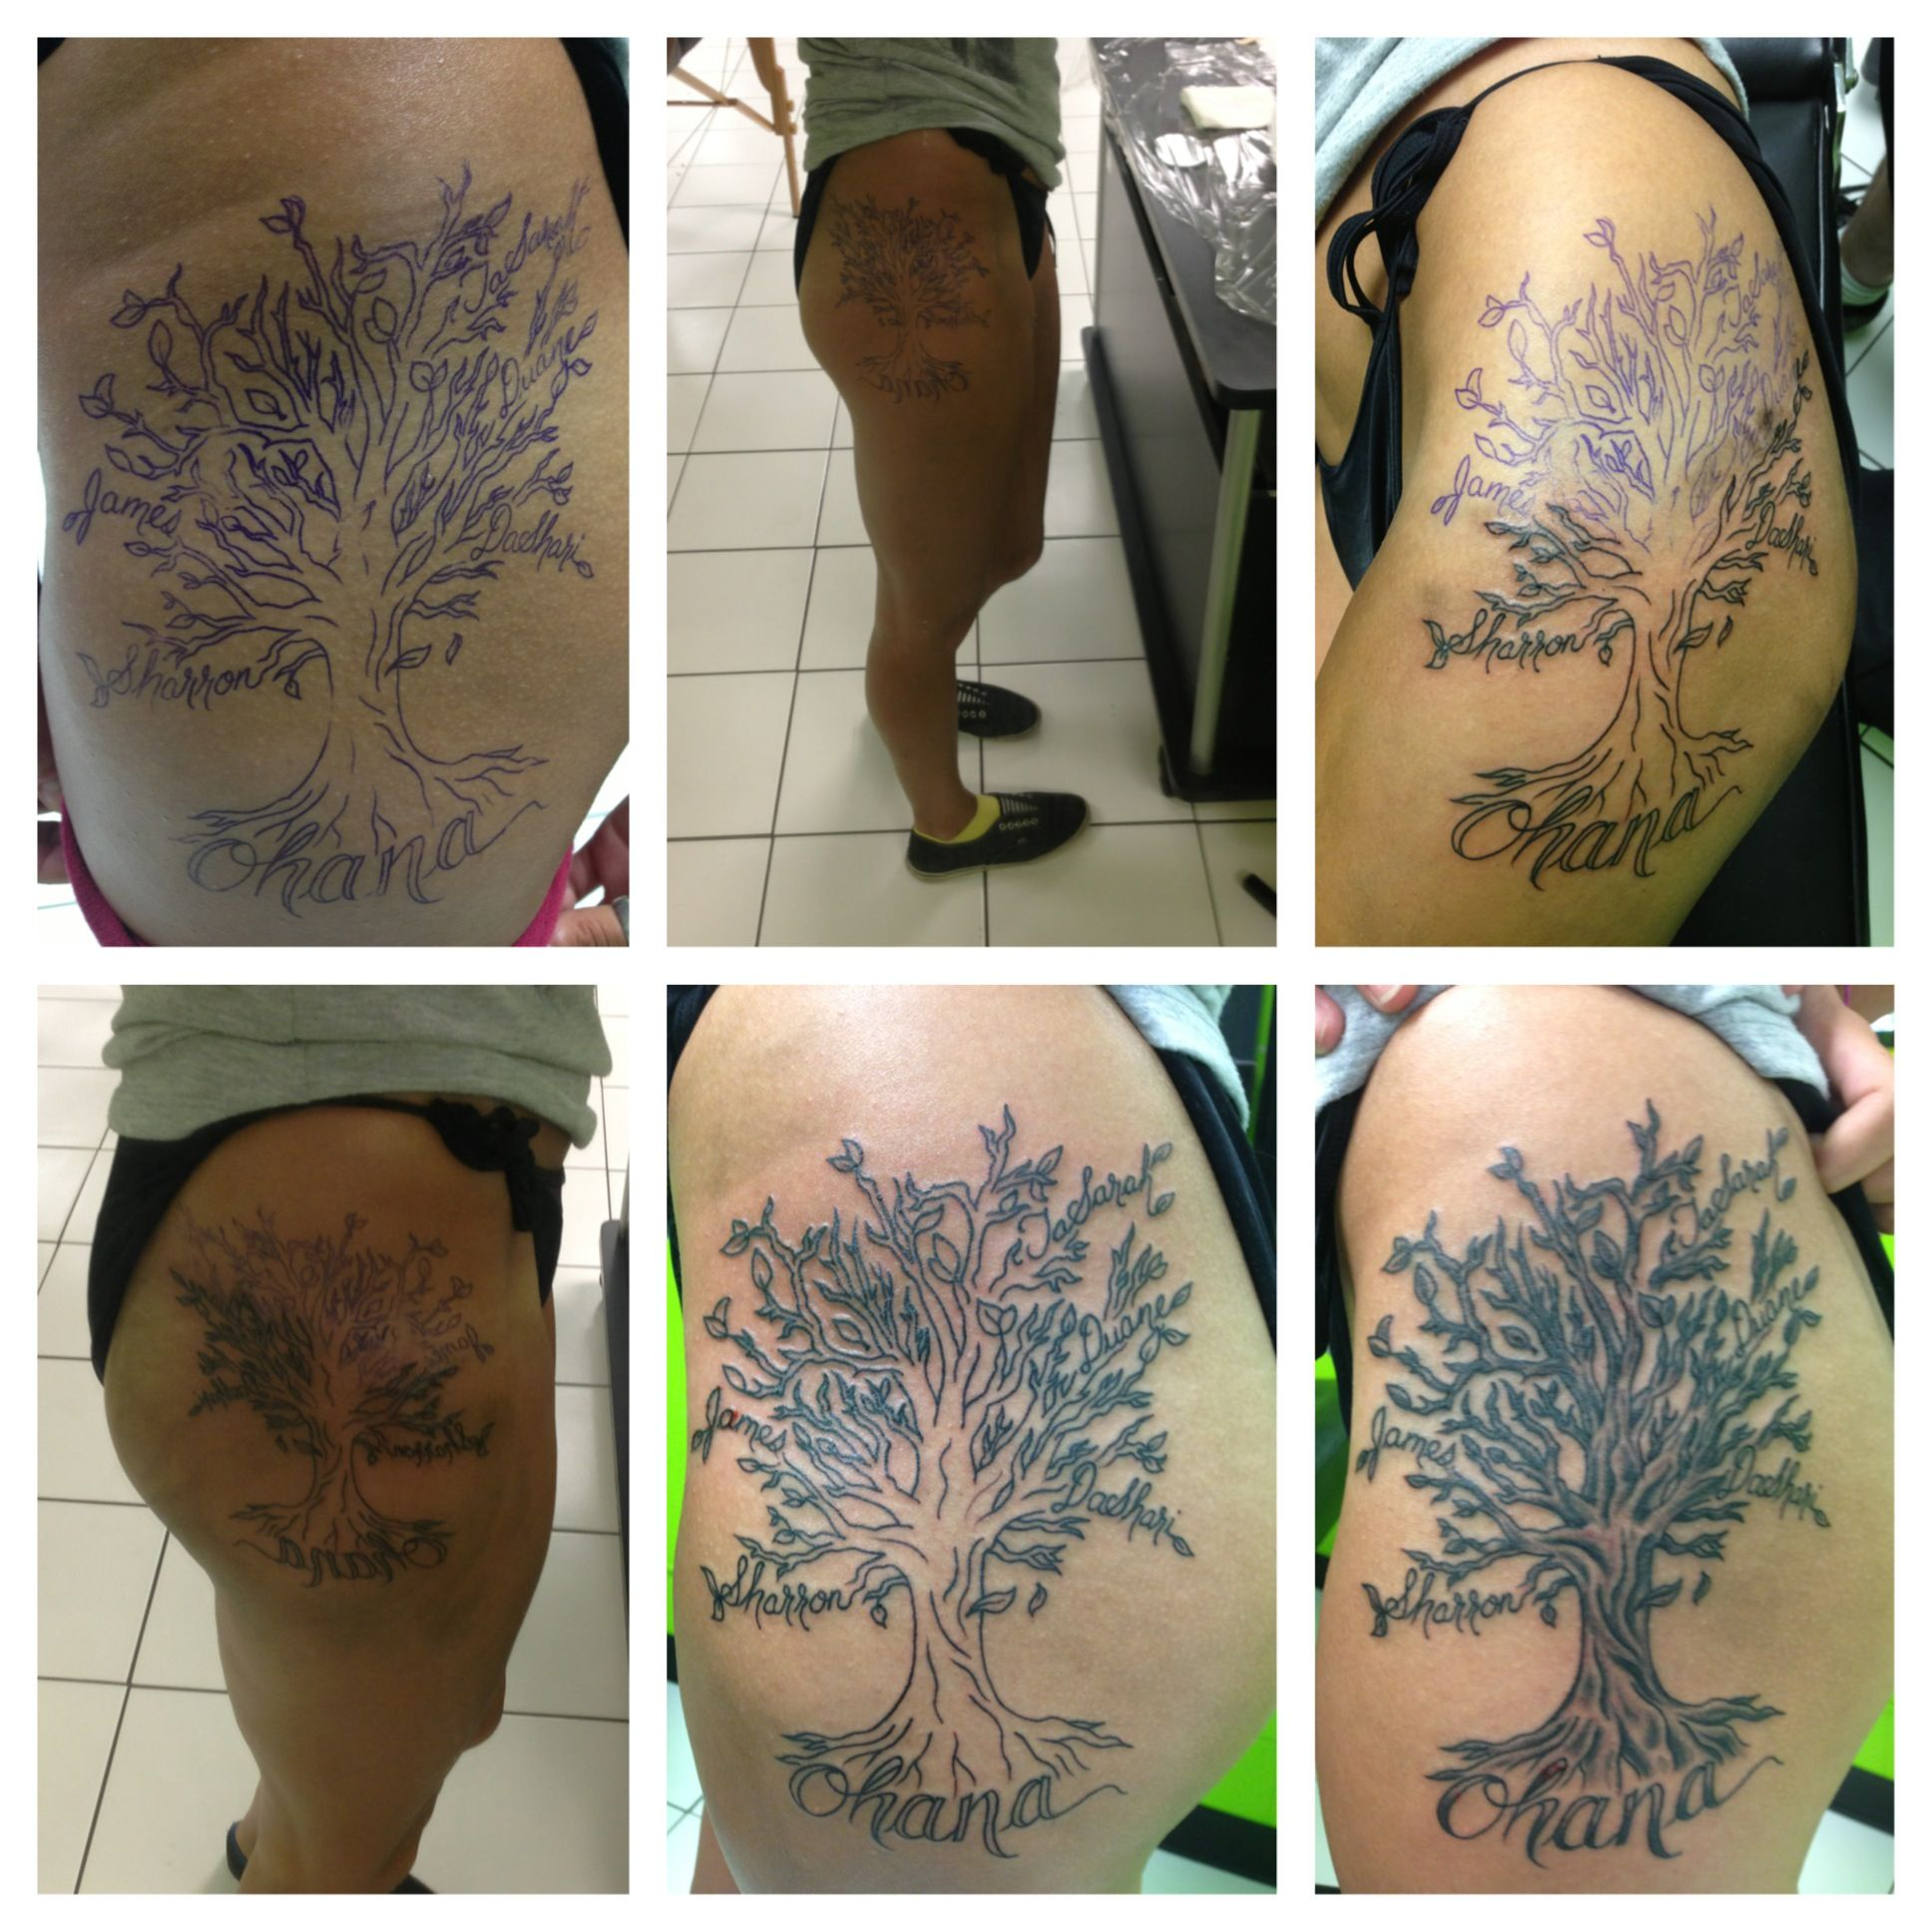 69 meaningful family tattoos designs mens craze - Family Tree Ohana Tattoo Side Tattoo Love My New Tattoo 3